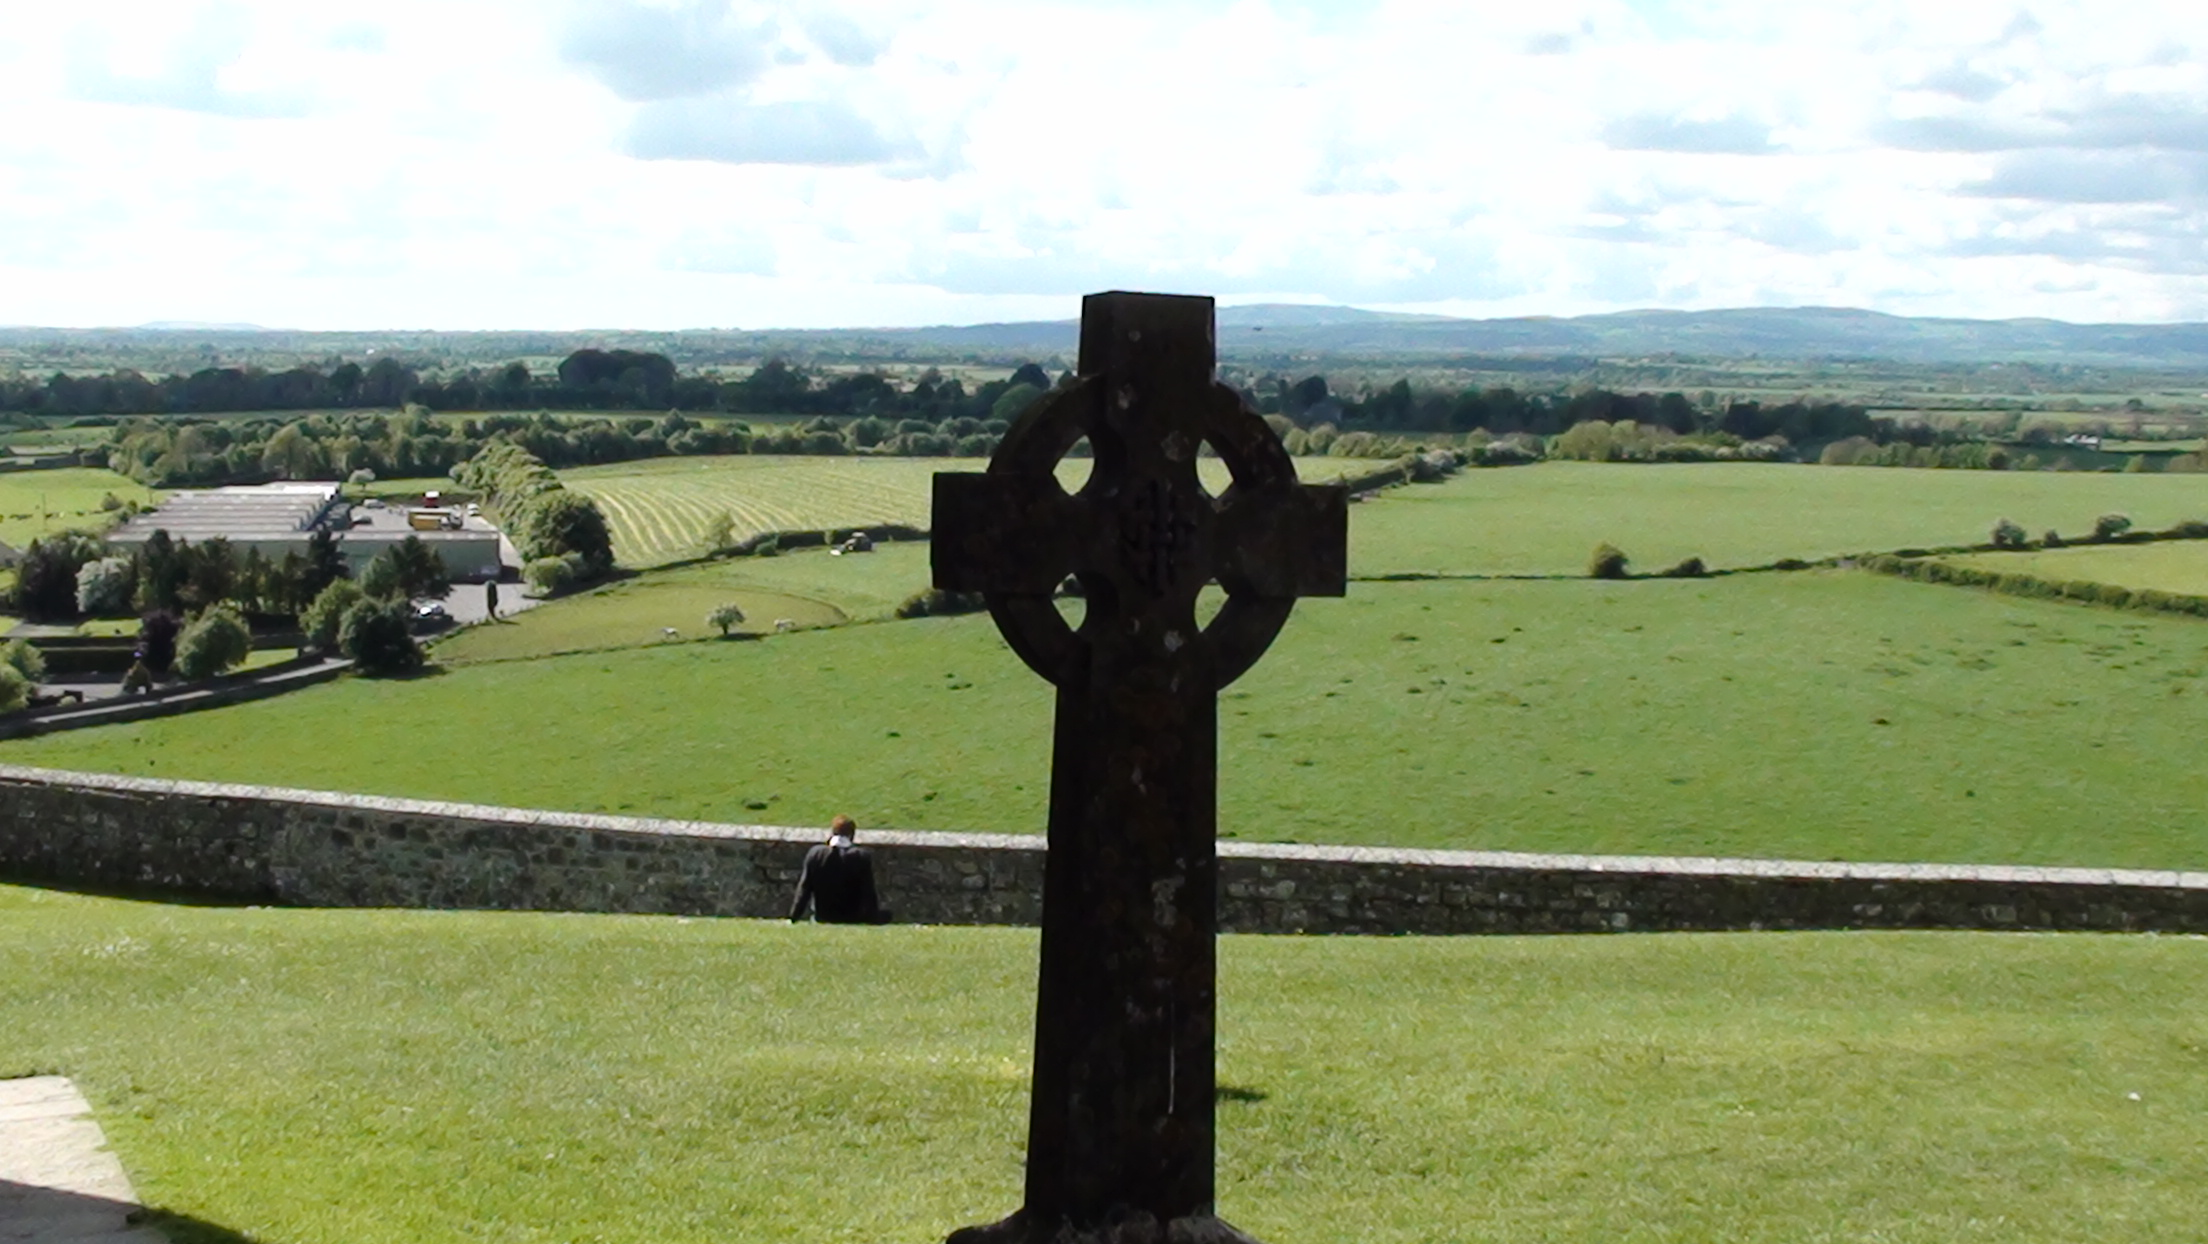 View from Rock of Cashel in County Tipperary